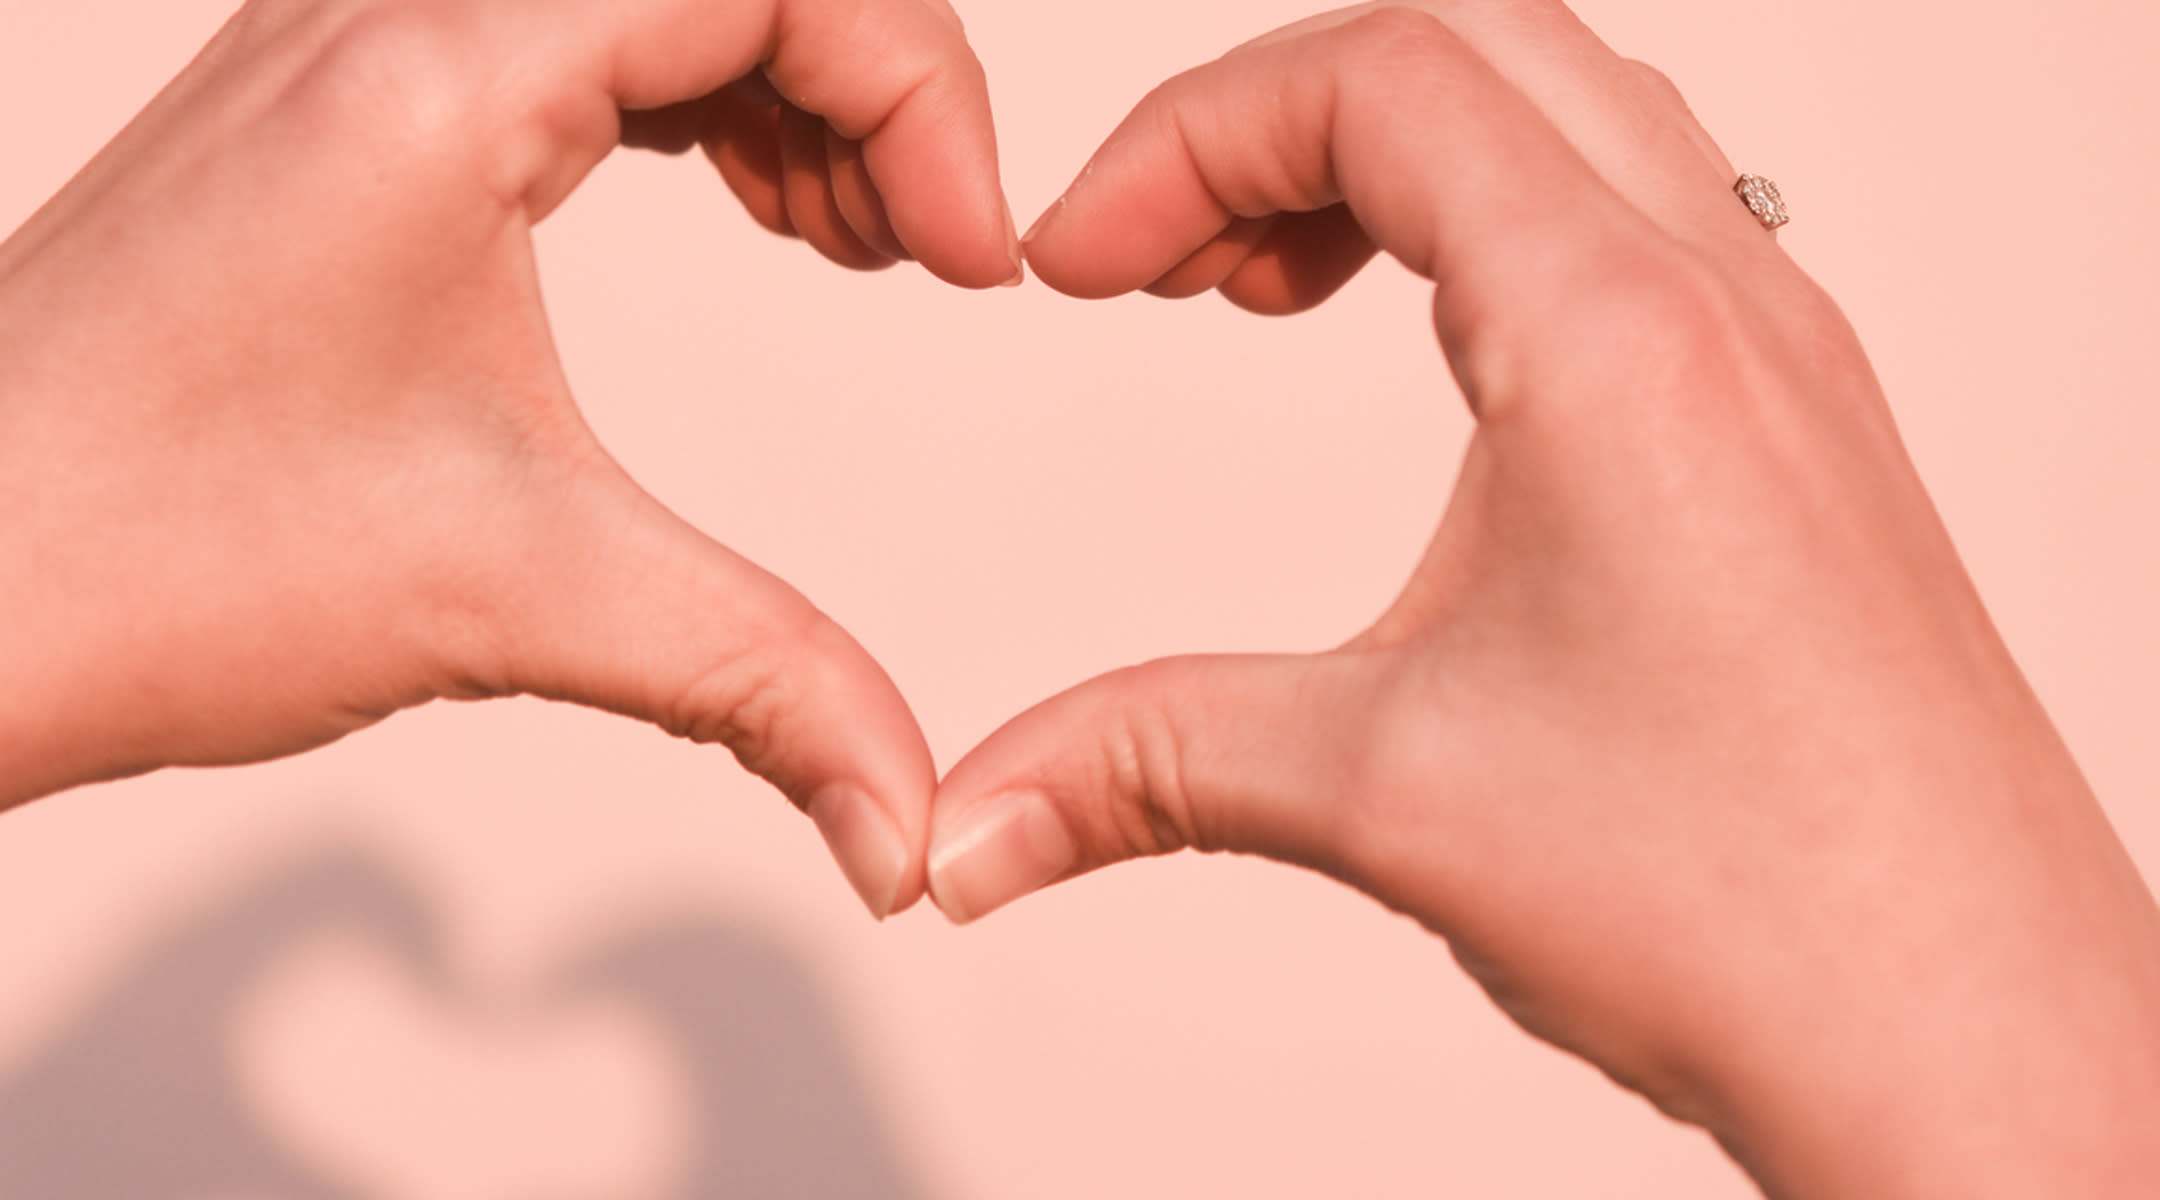 Two hands forming heart shape against pink background.